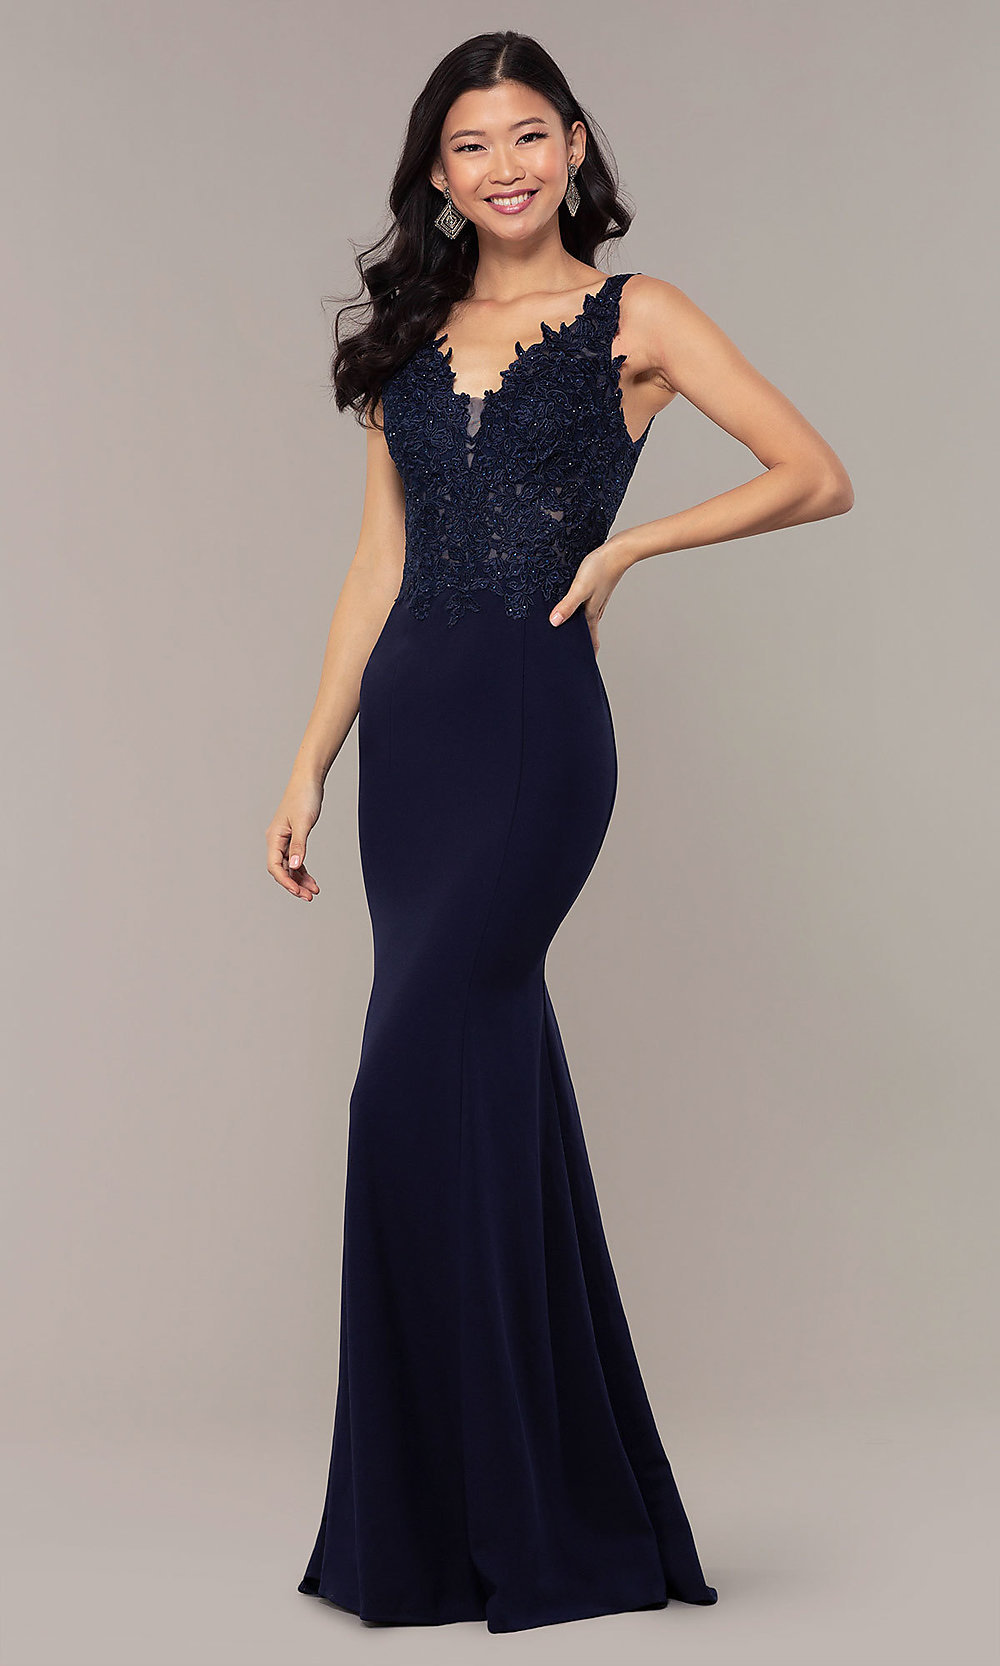 Embroidered-Bodice Long Formal Dress with Train 5be92dcdb